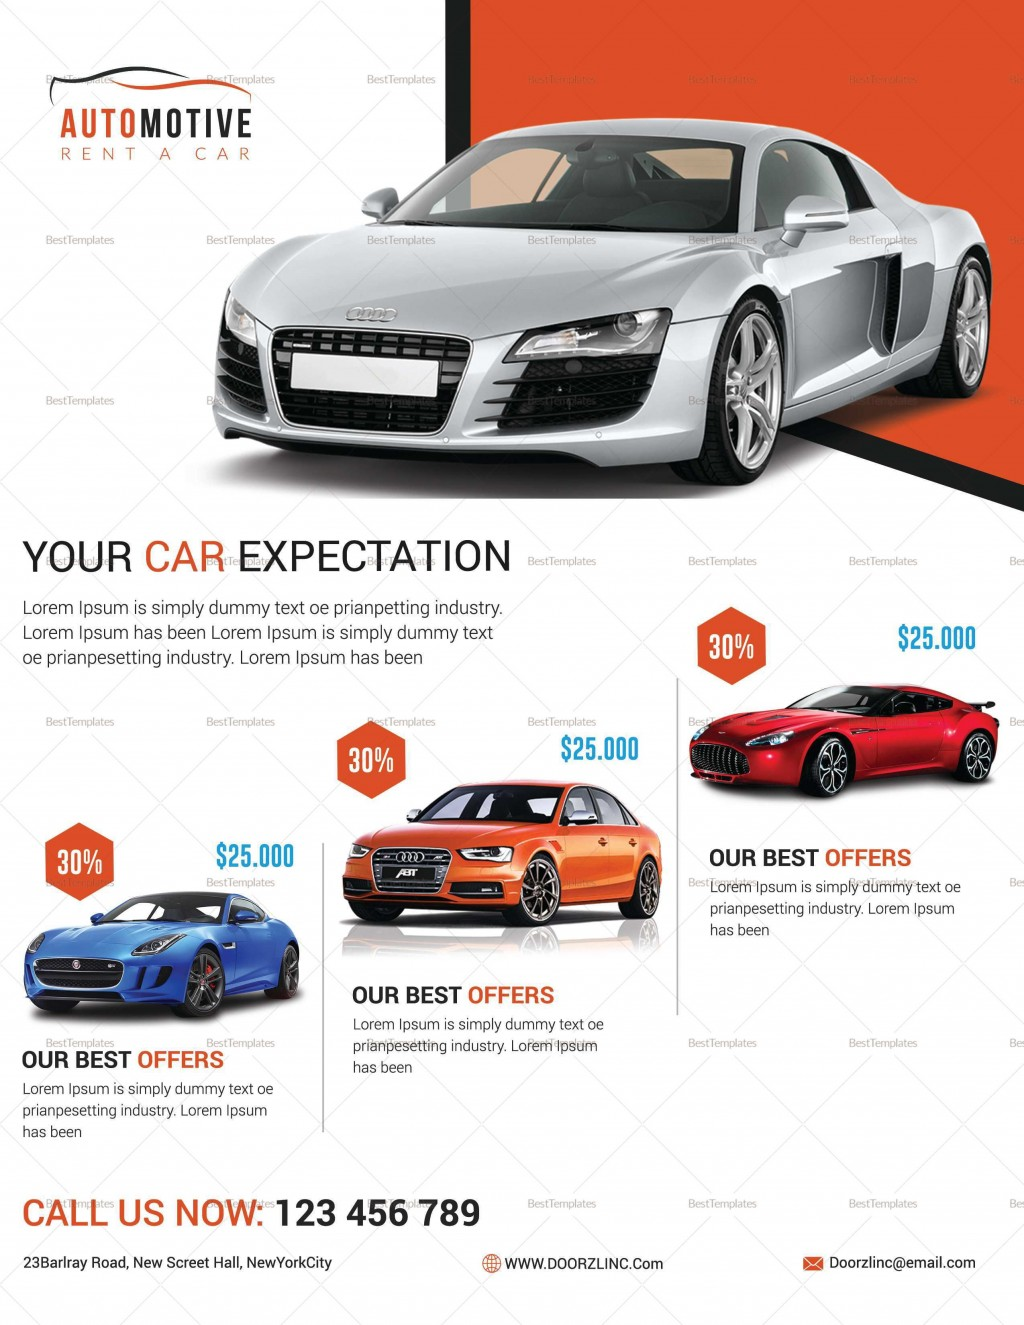 000 Magnificent For Sale Flyer Template Idea  Car Ad Microsoft Word HouseLarge